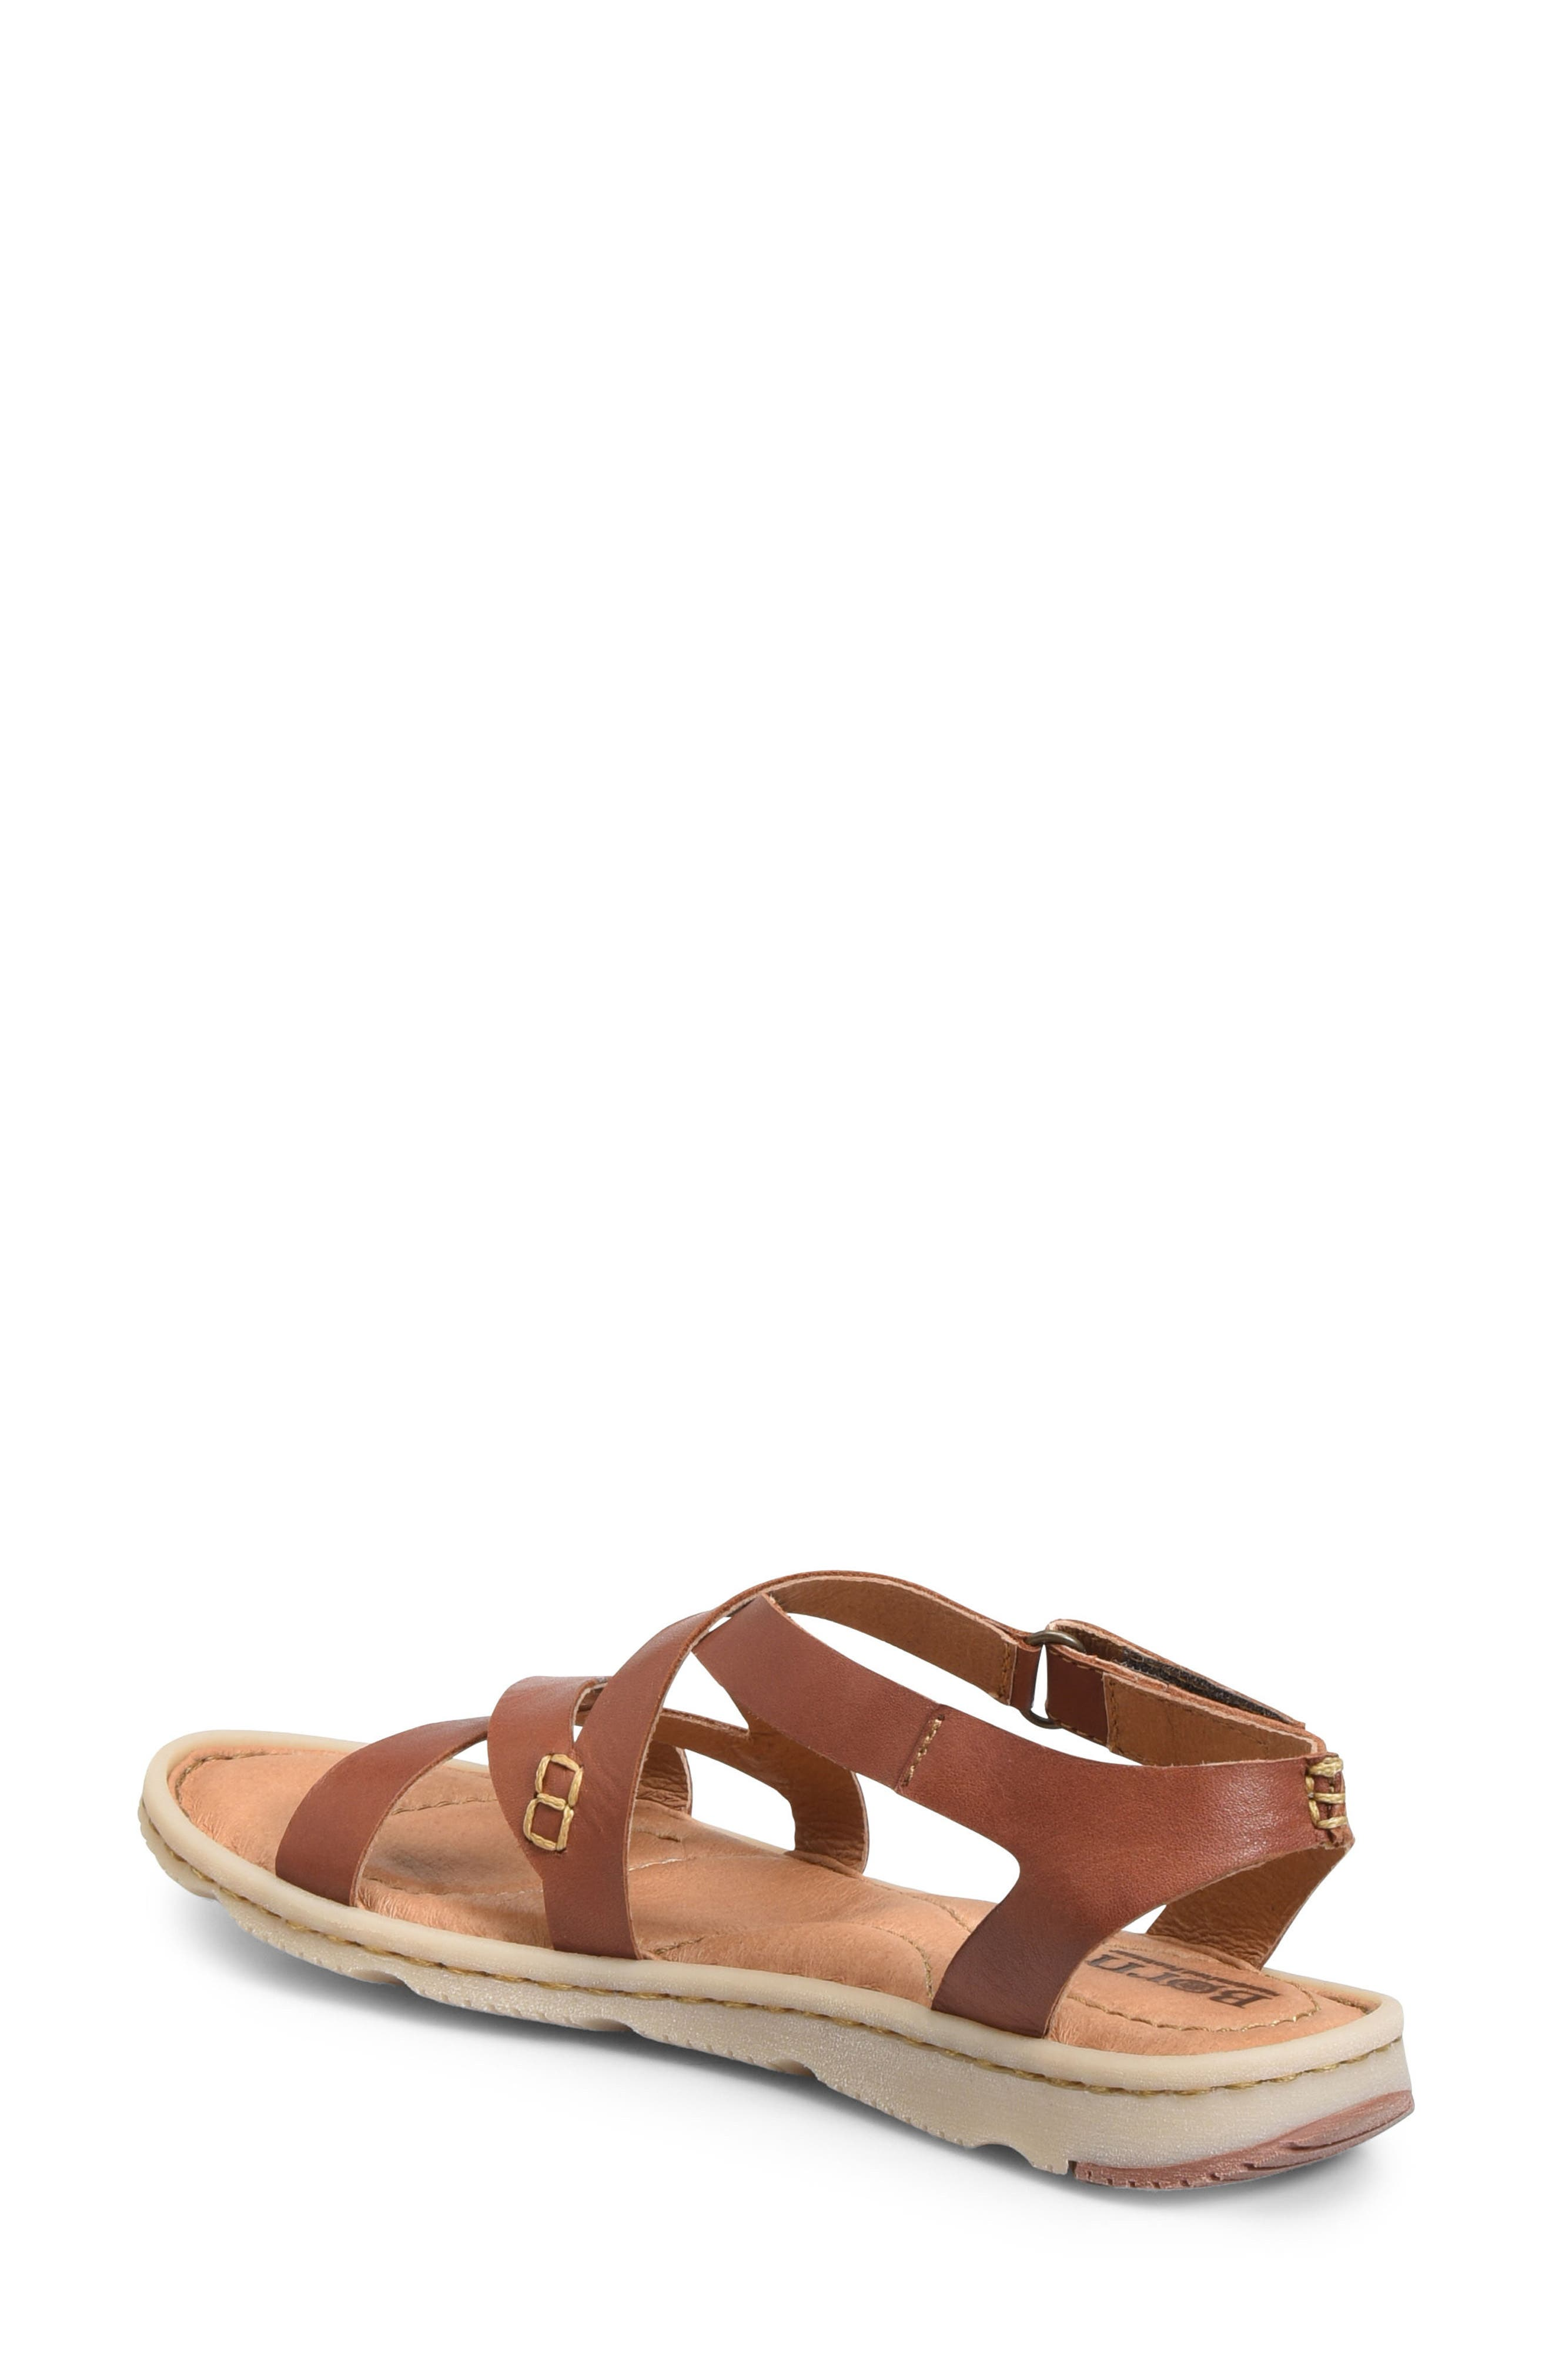 Trinidad Sandal,                             Alternate thumbnail 2, color,                             Brown Leather